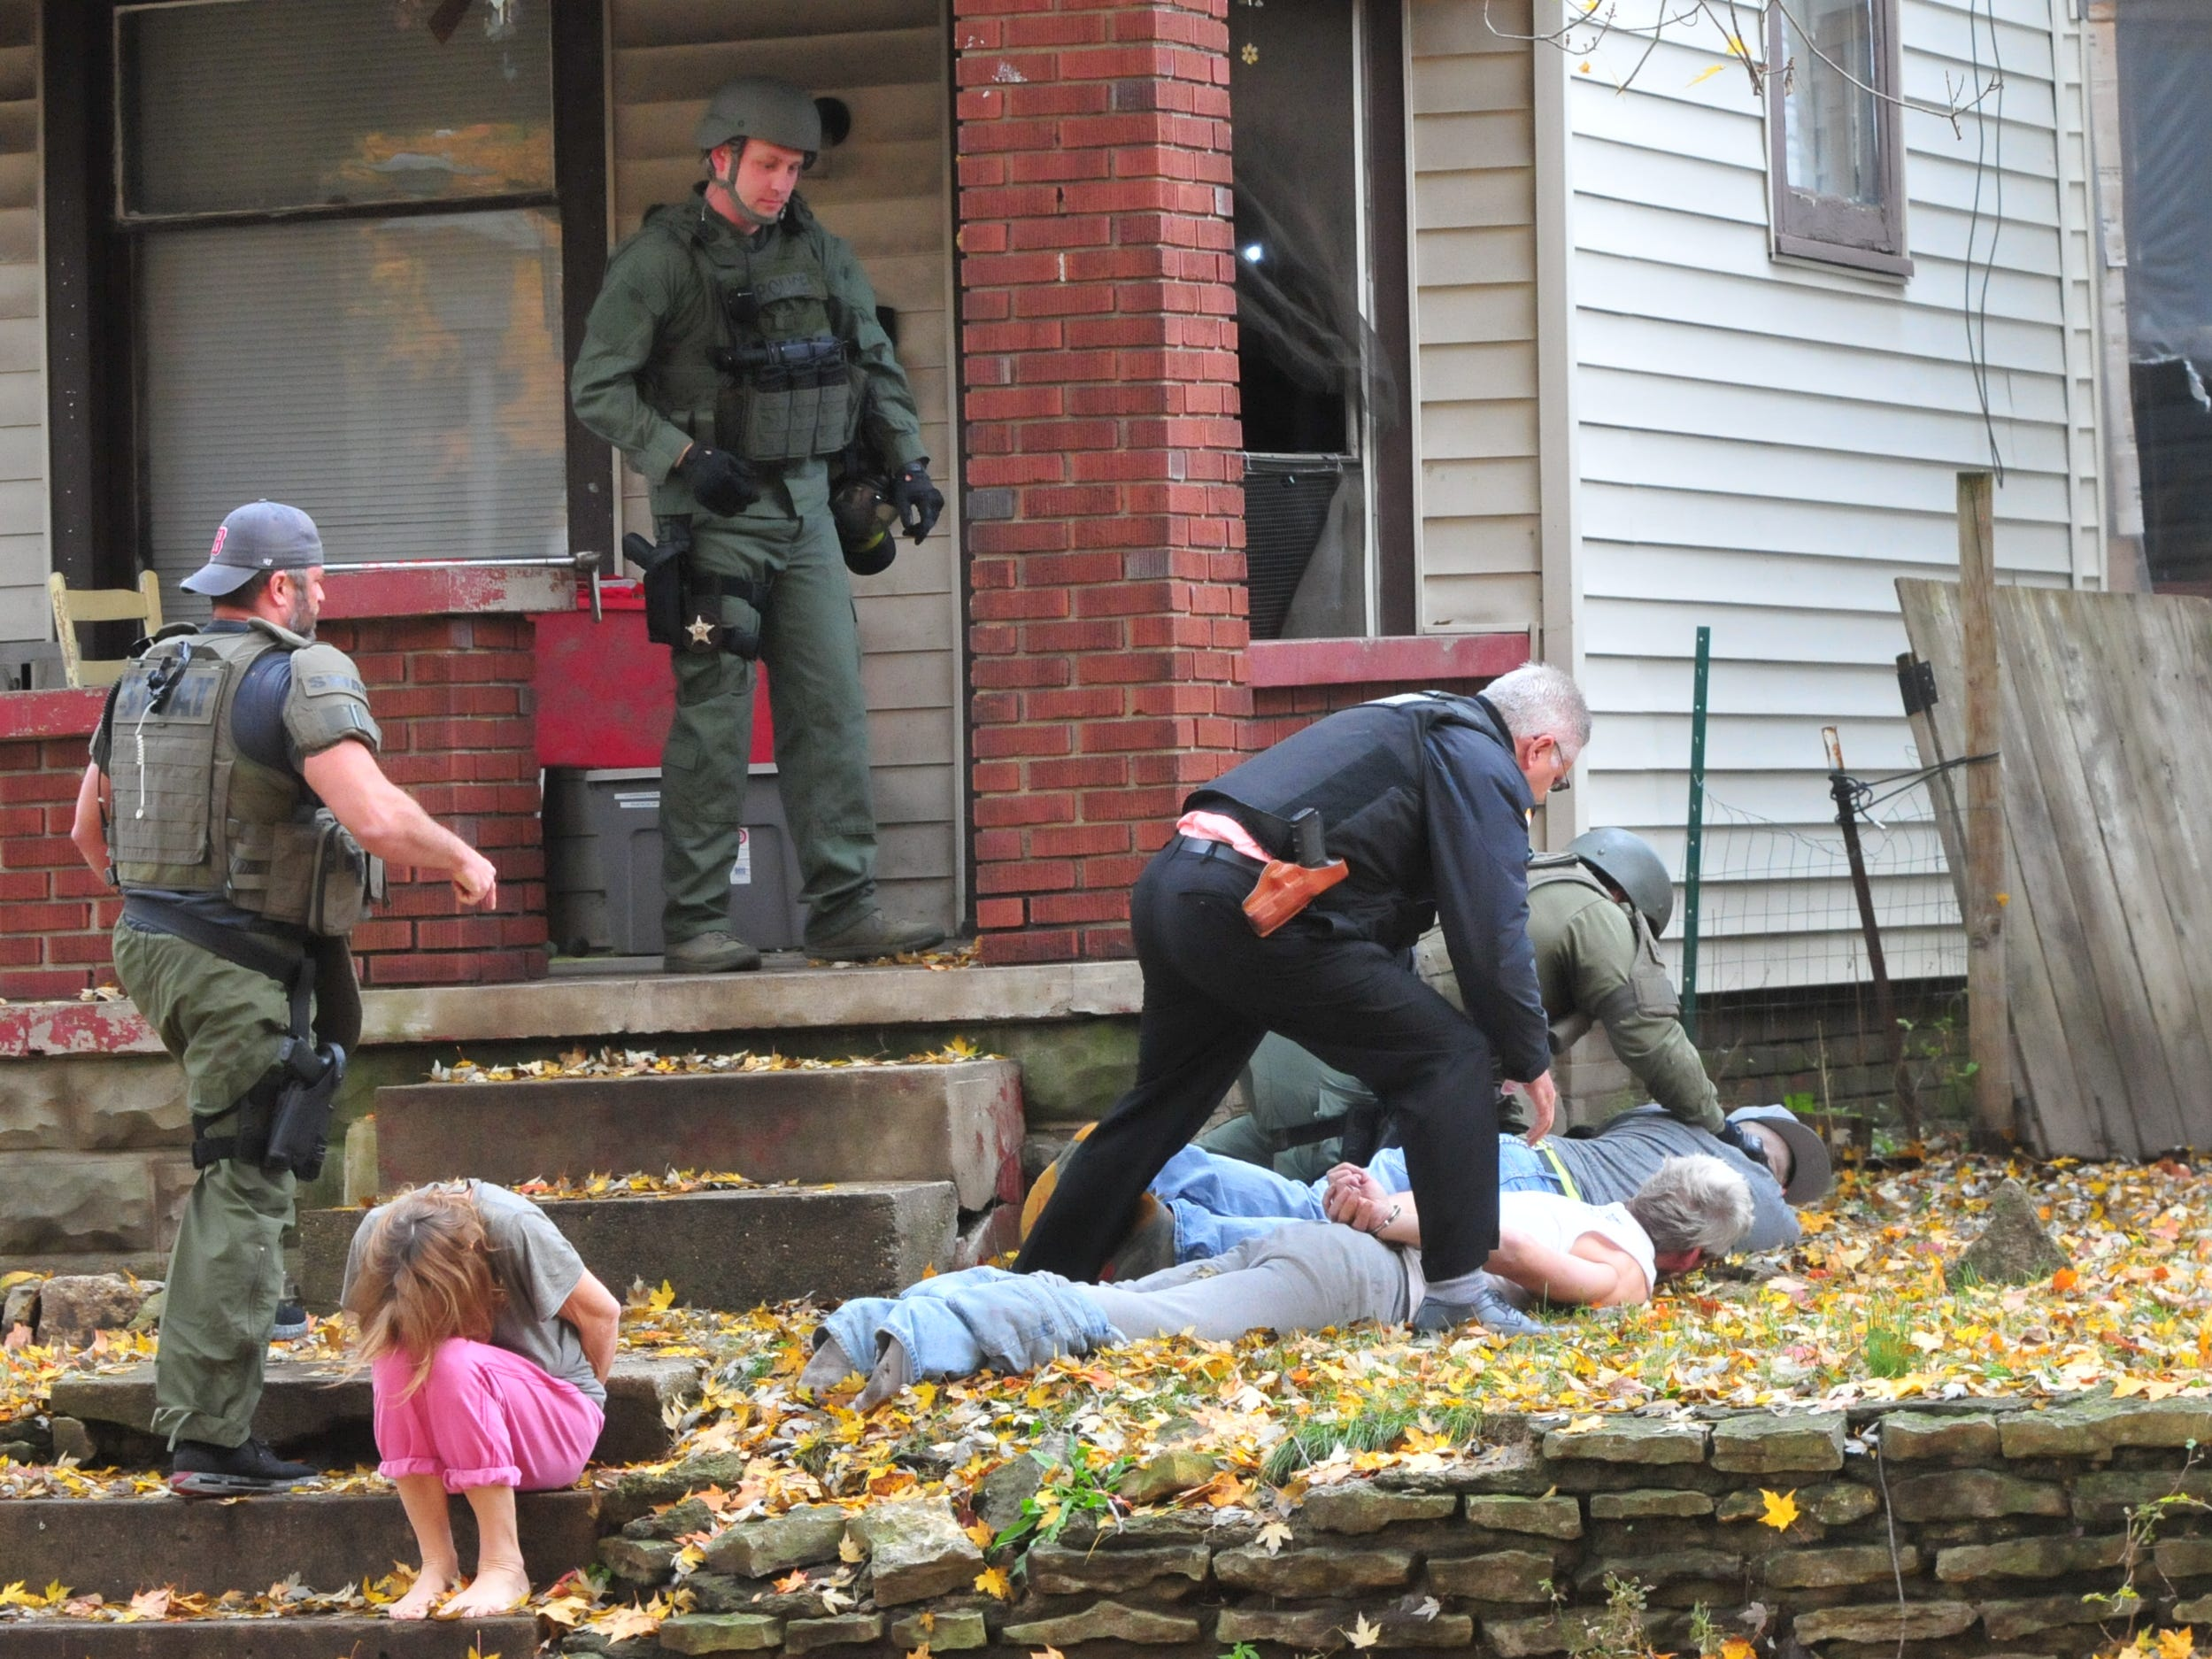 Corey Groce is put on his stomach outside 219 N. 16th St. during a SWAT raid Monday.